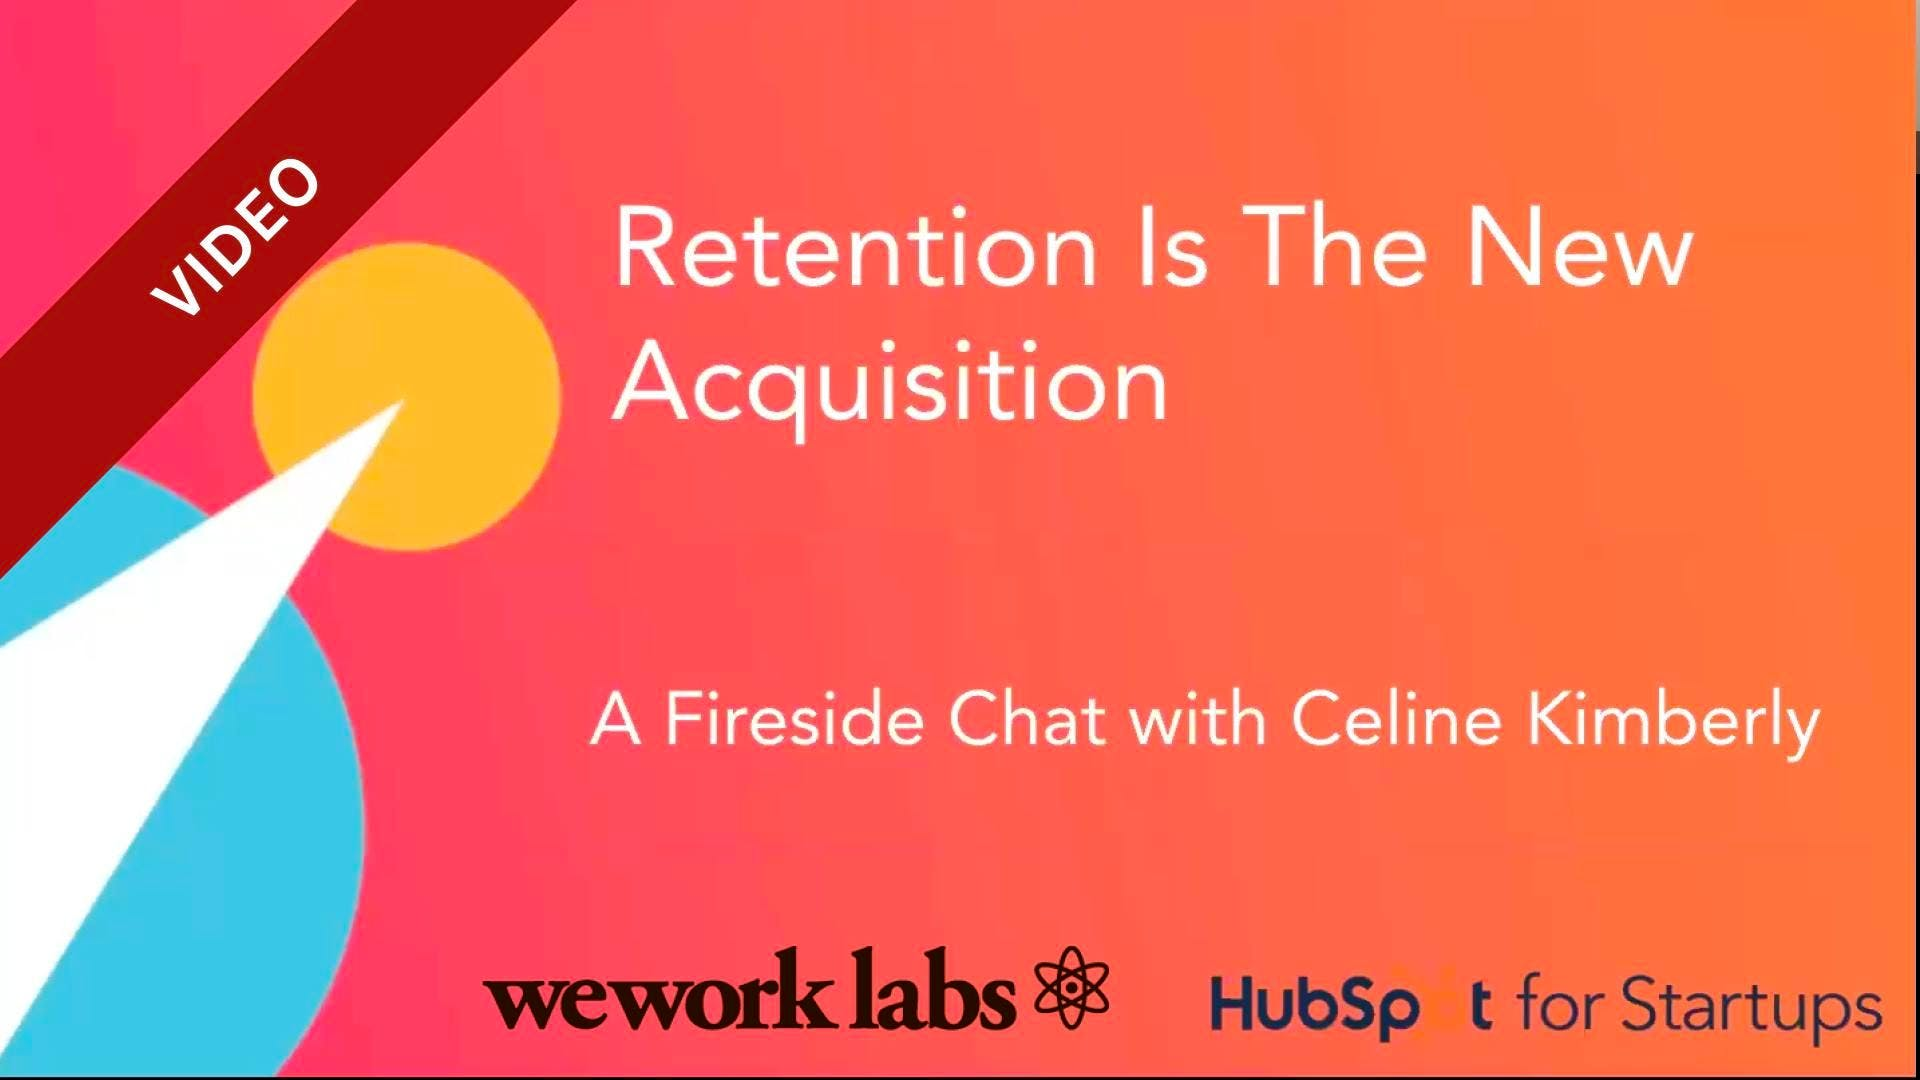 Live AMA: Retention is the New Acquisition with Celine Kimberly